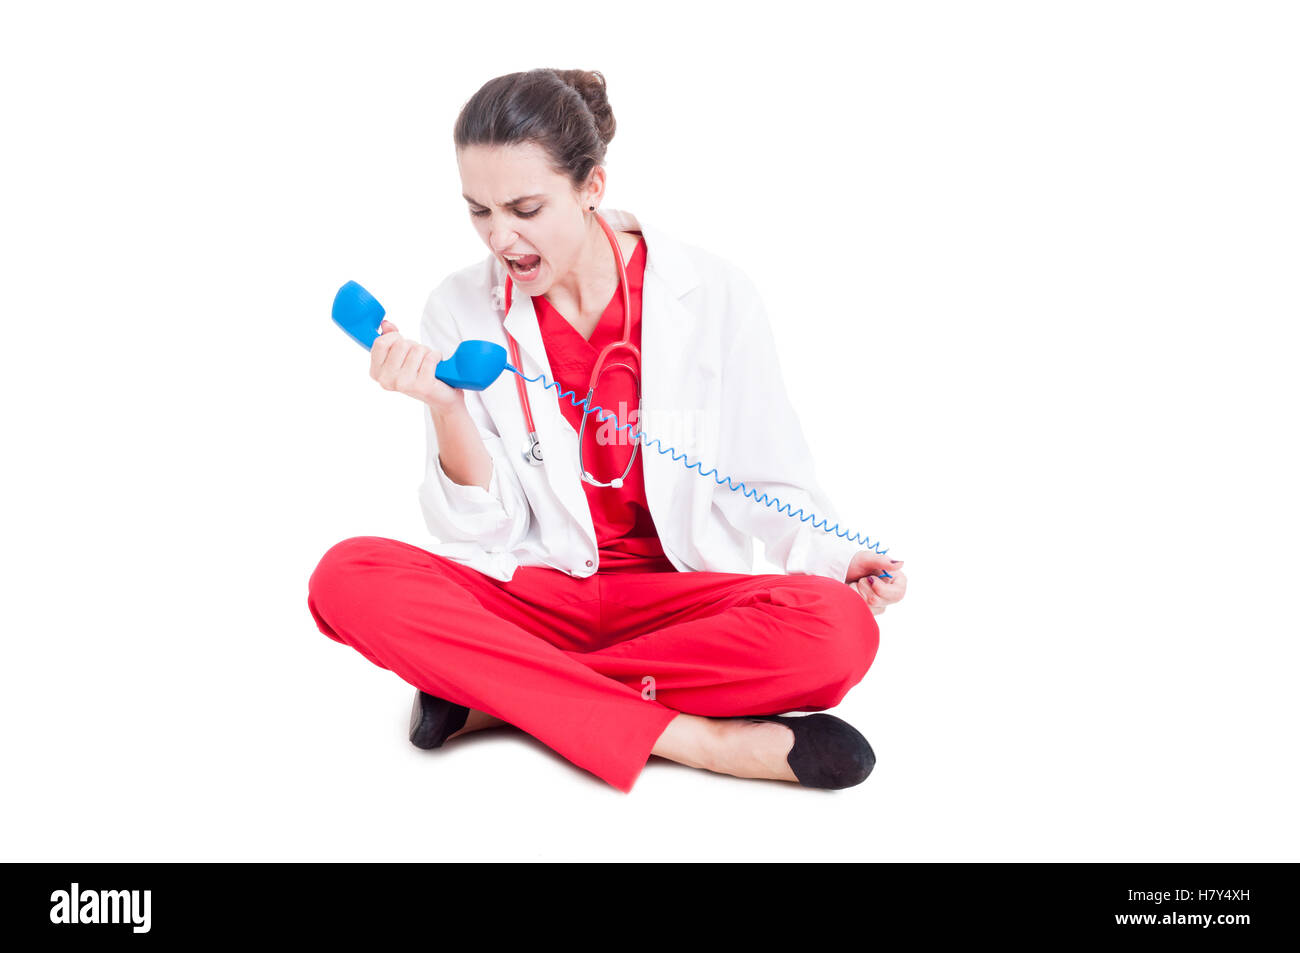 Angry medic woman screaming on telephone receiver as conflict concept isolated on white - Stock Image